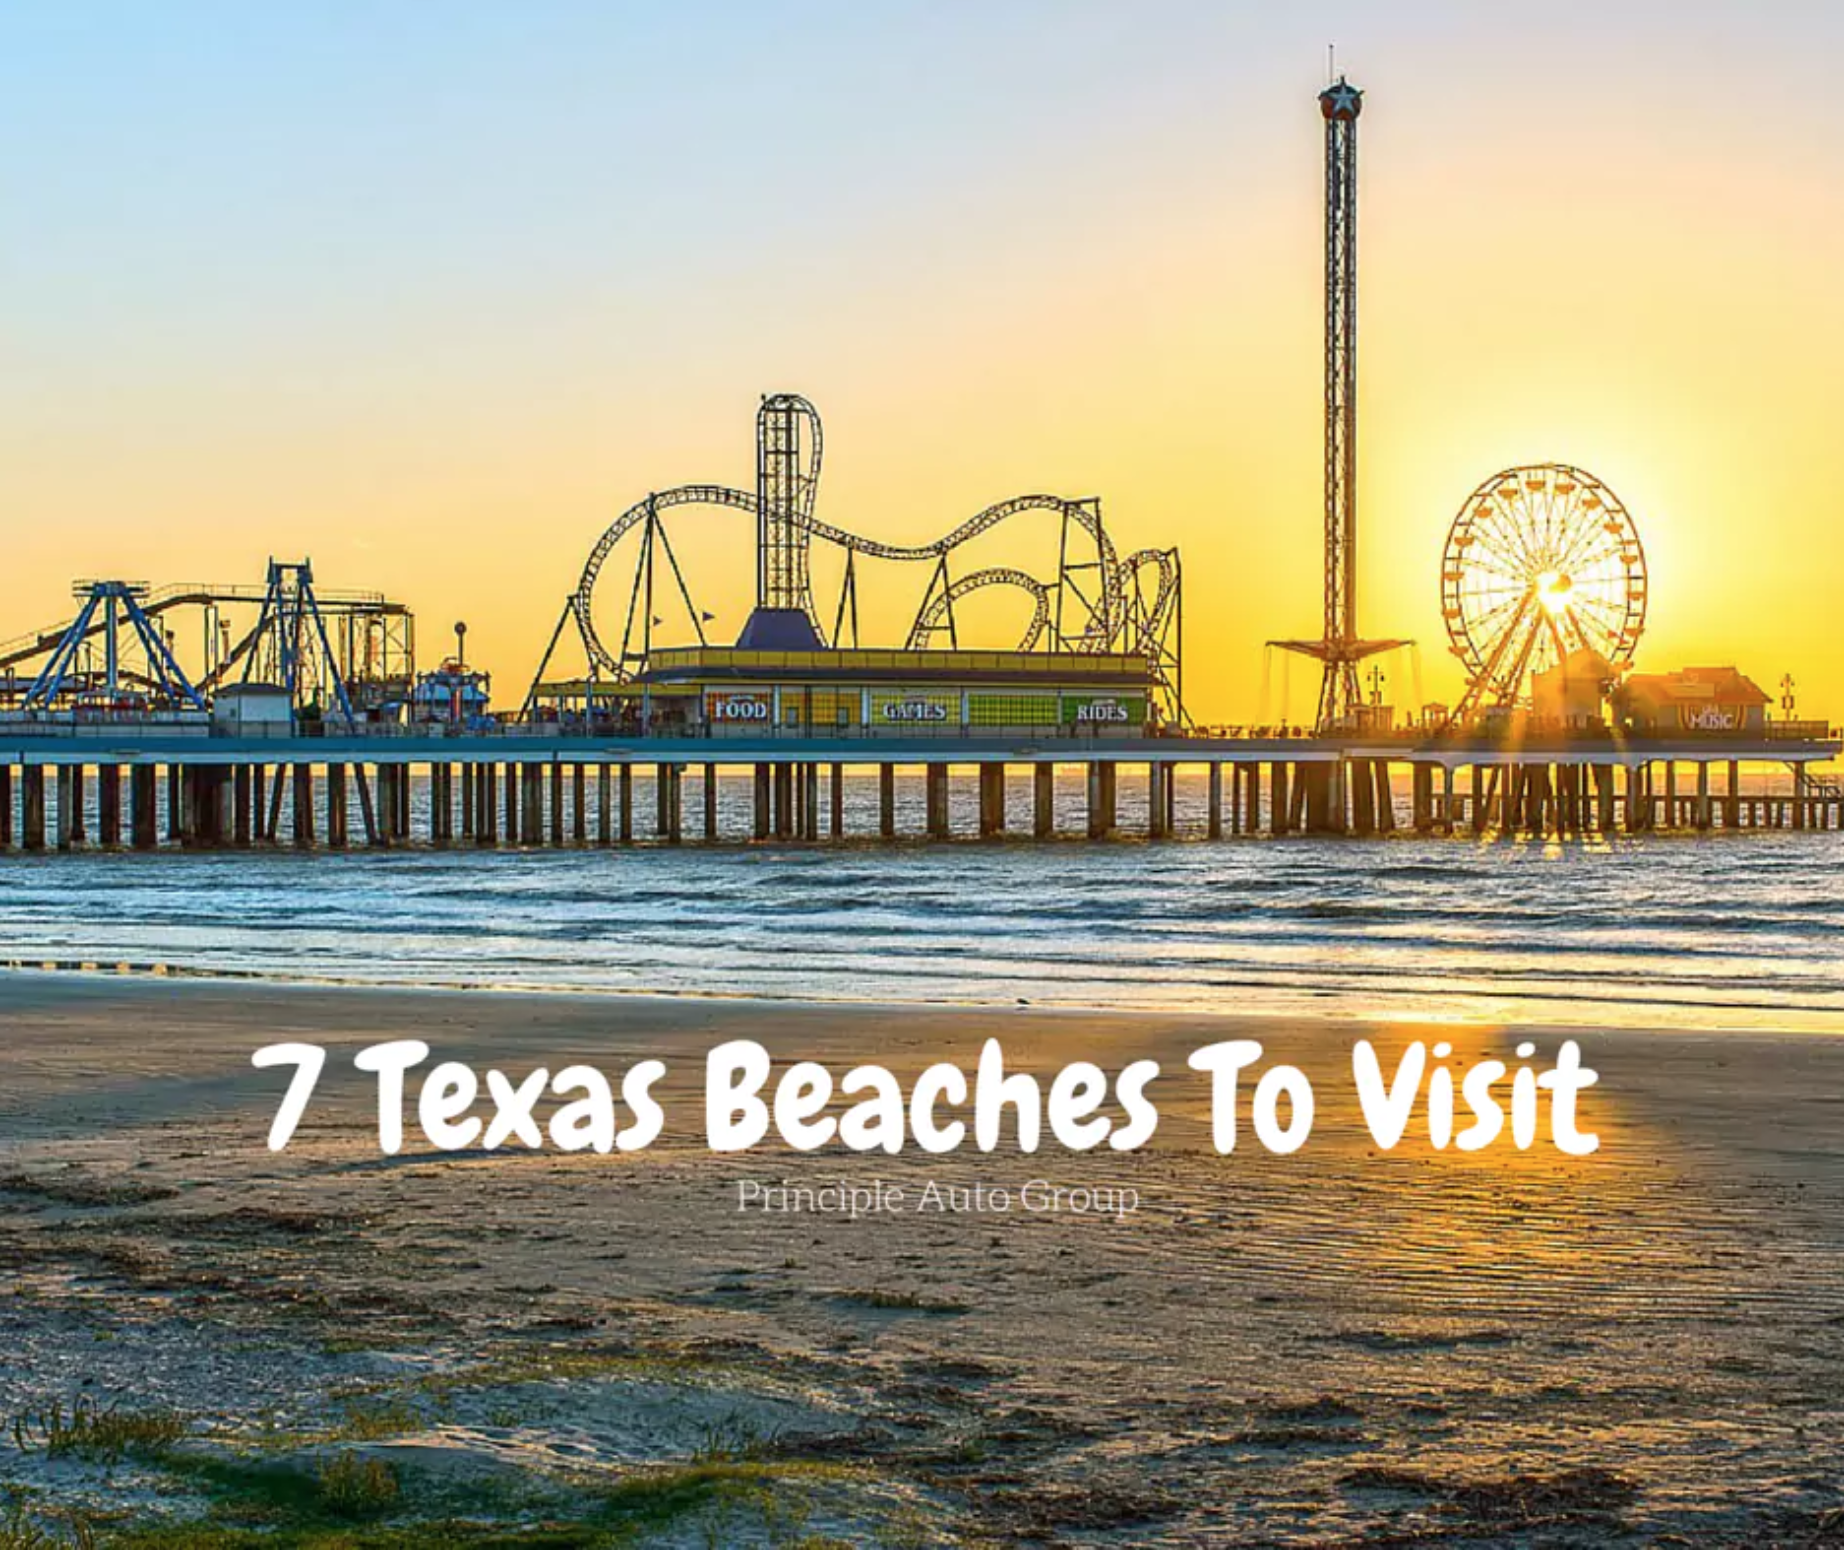 7 Texas Beaches to Visit